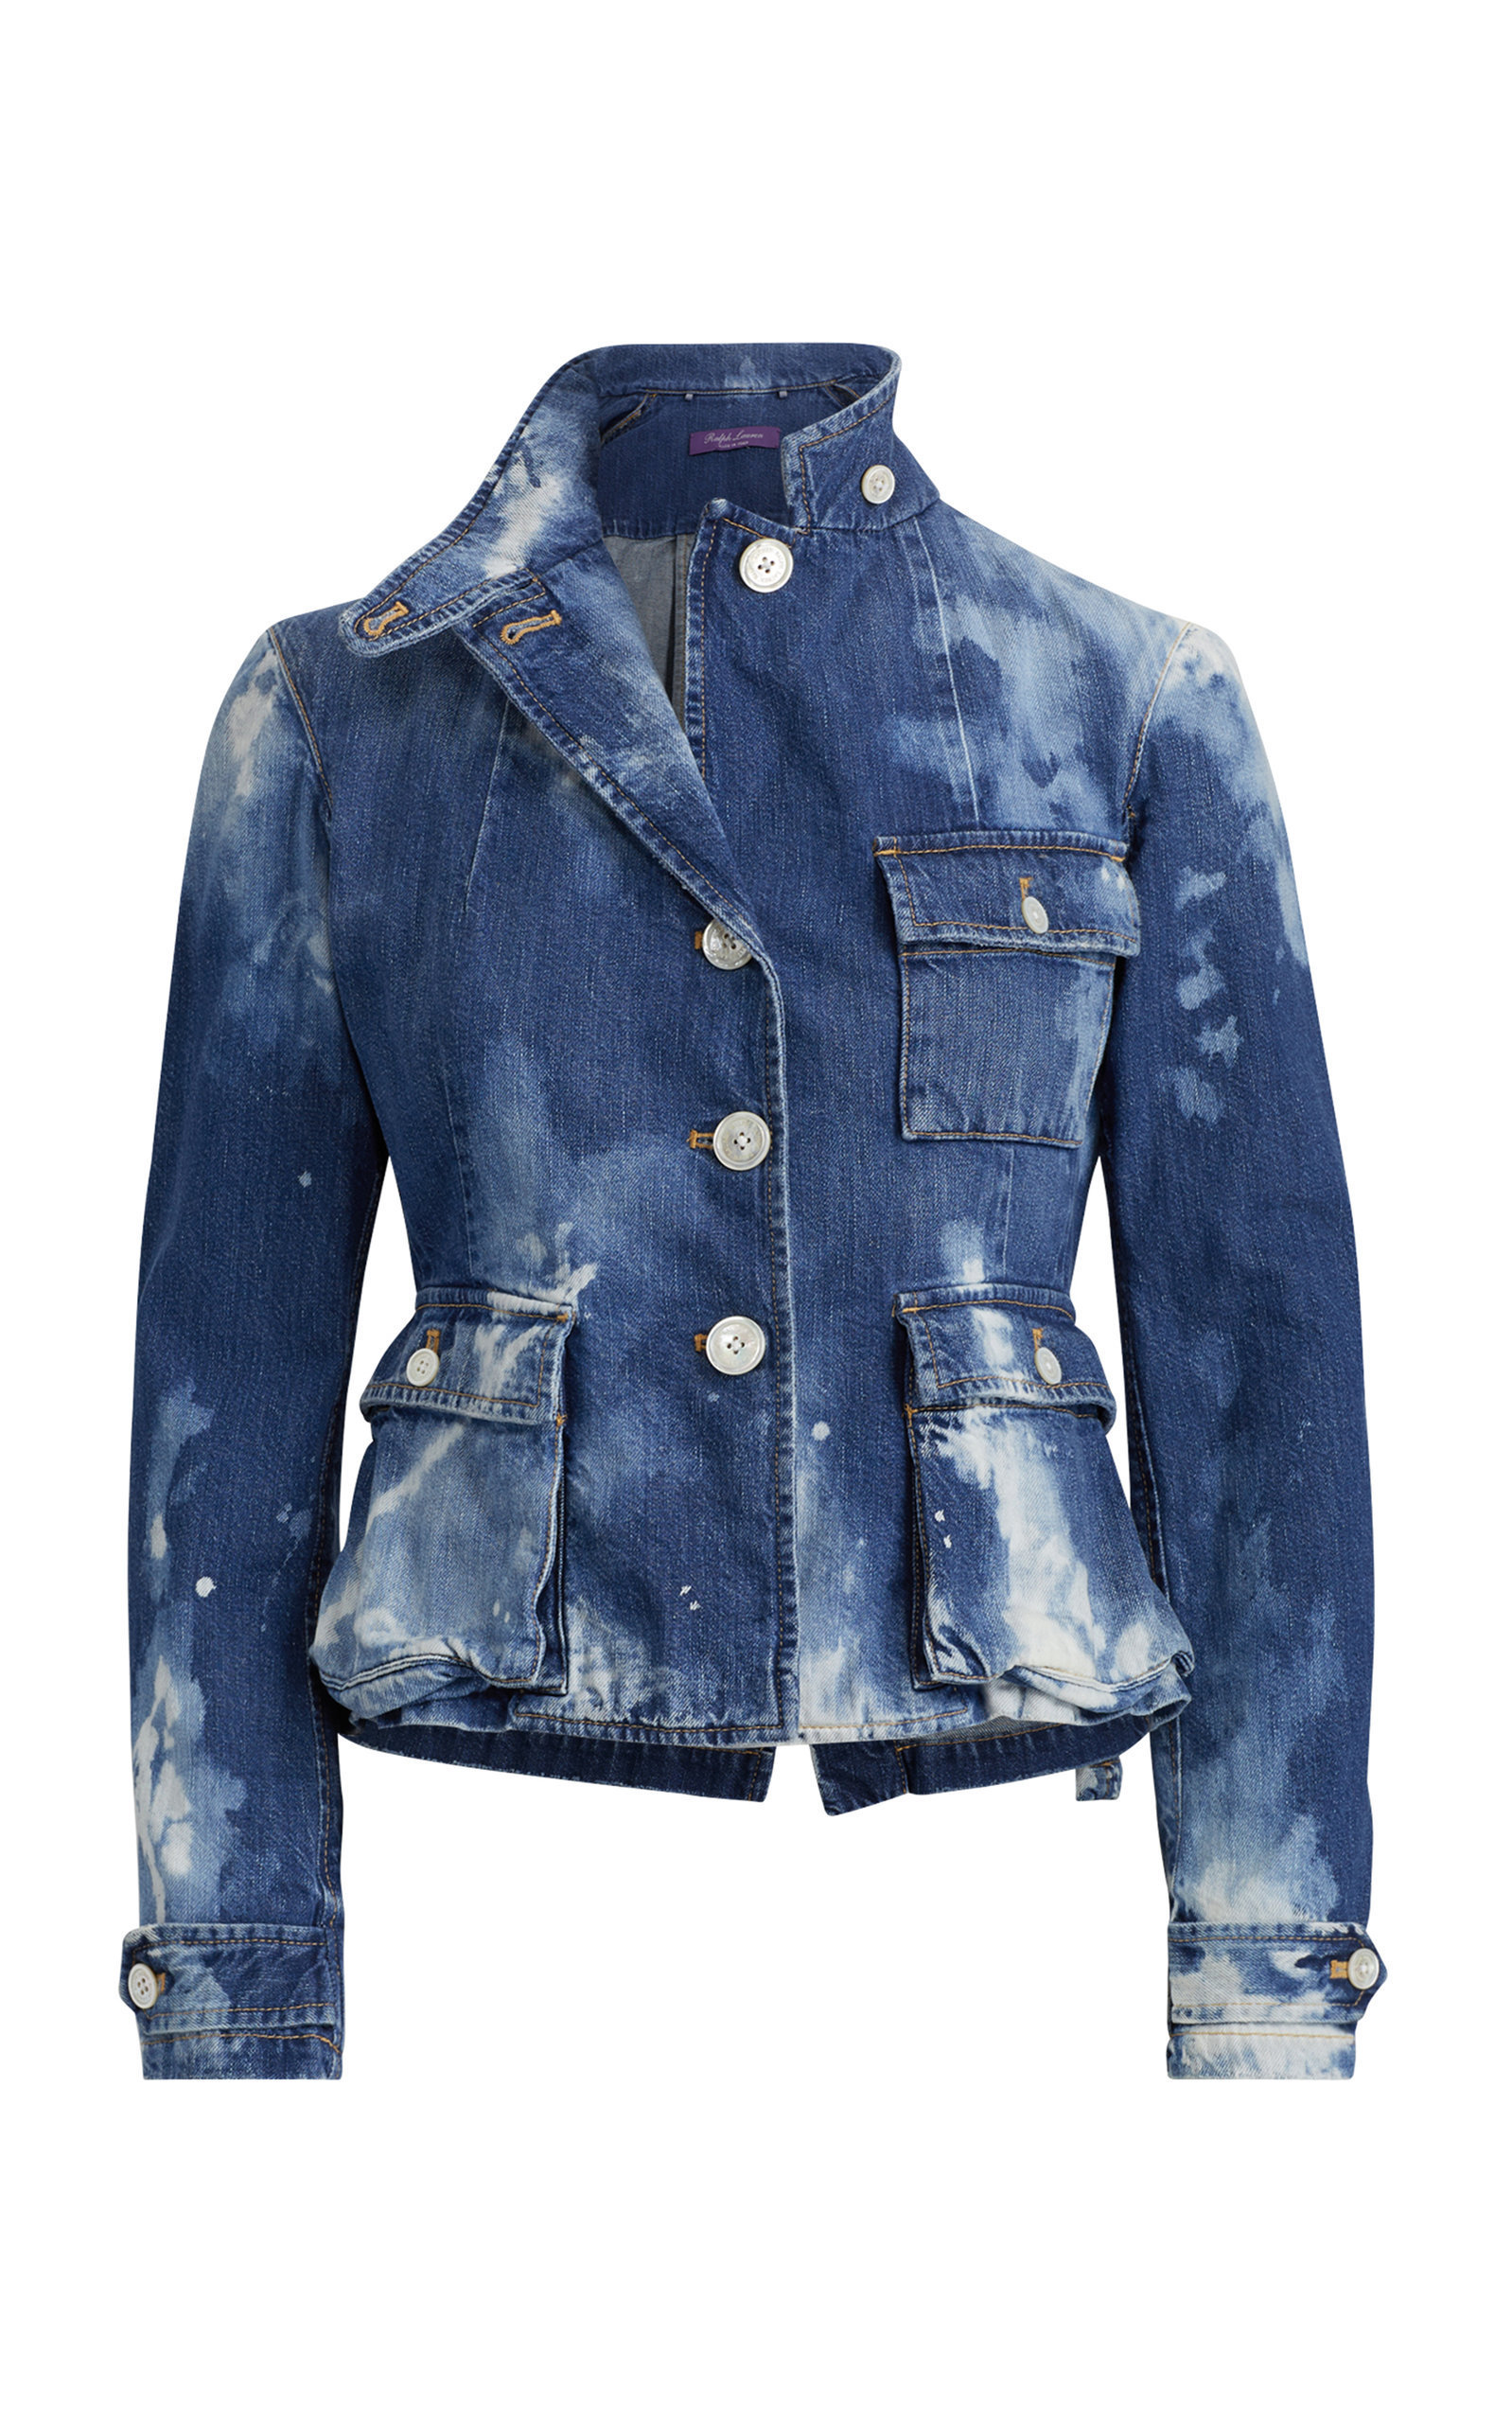 Jeans Raccourcis Pour Femme. Isabele Denim Safari Jacket by RALPH LAUREN  Now Available on Moda Operandi Couture, Mode, f1771bfee749